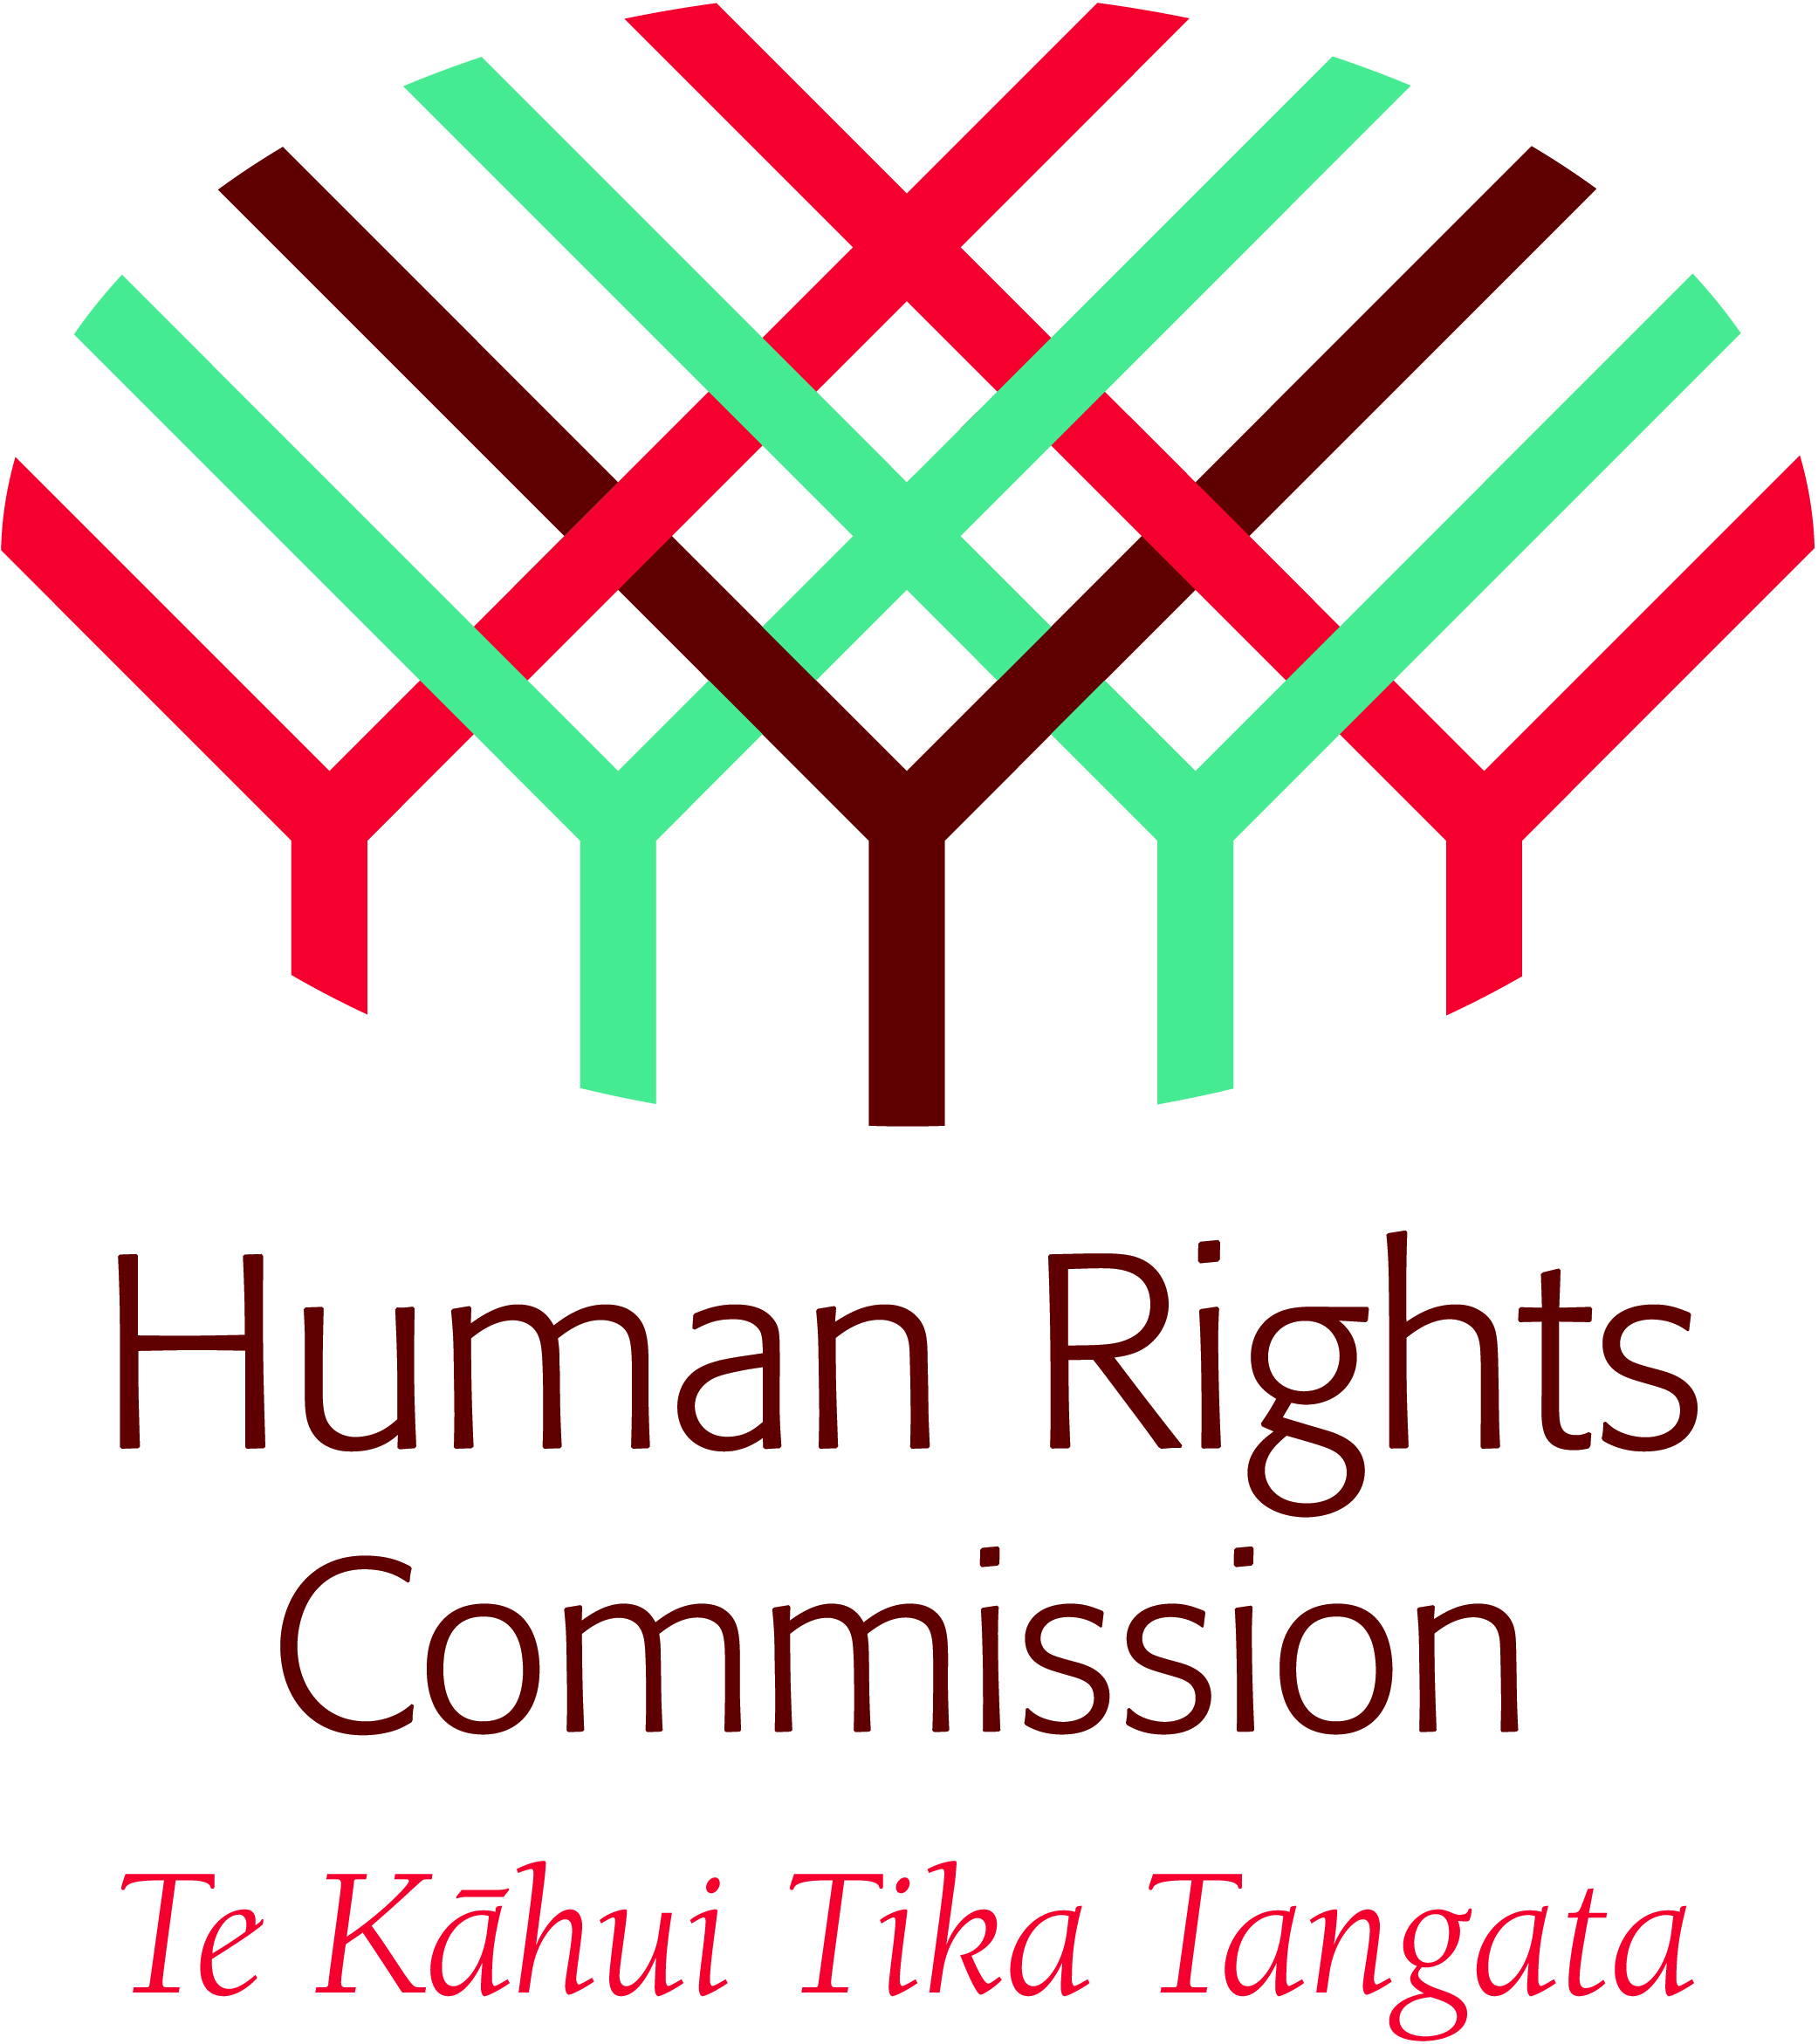 an analysis of the human rights commission An analysis of state compliance with the recommendations of the african commission on human and peoples' rights by lirette louw a thesis submitted in fulfilment of.